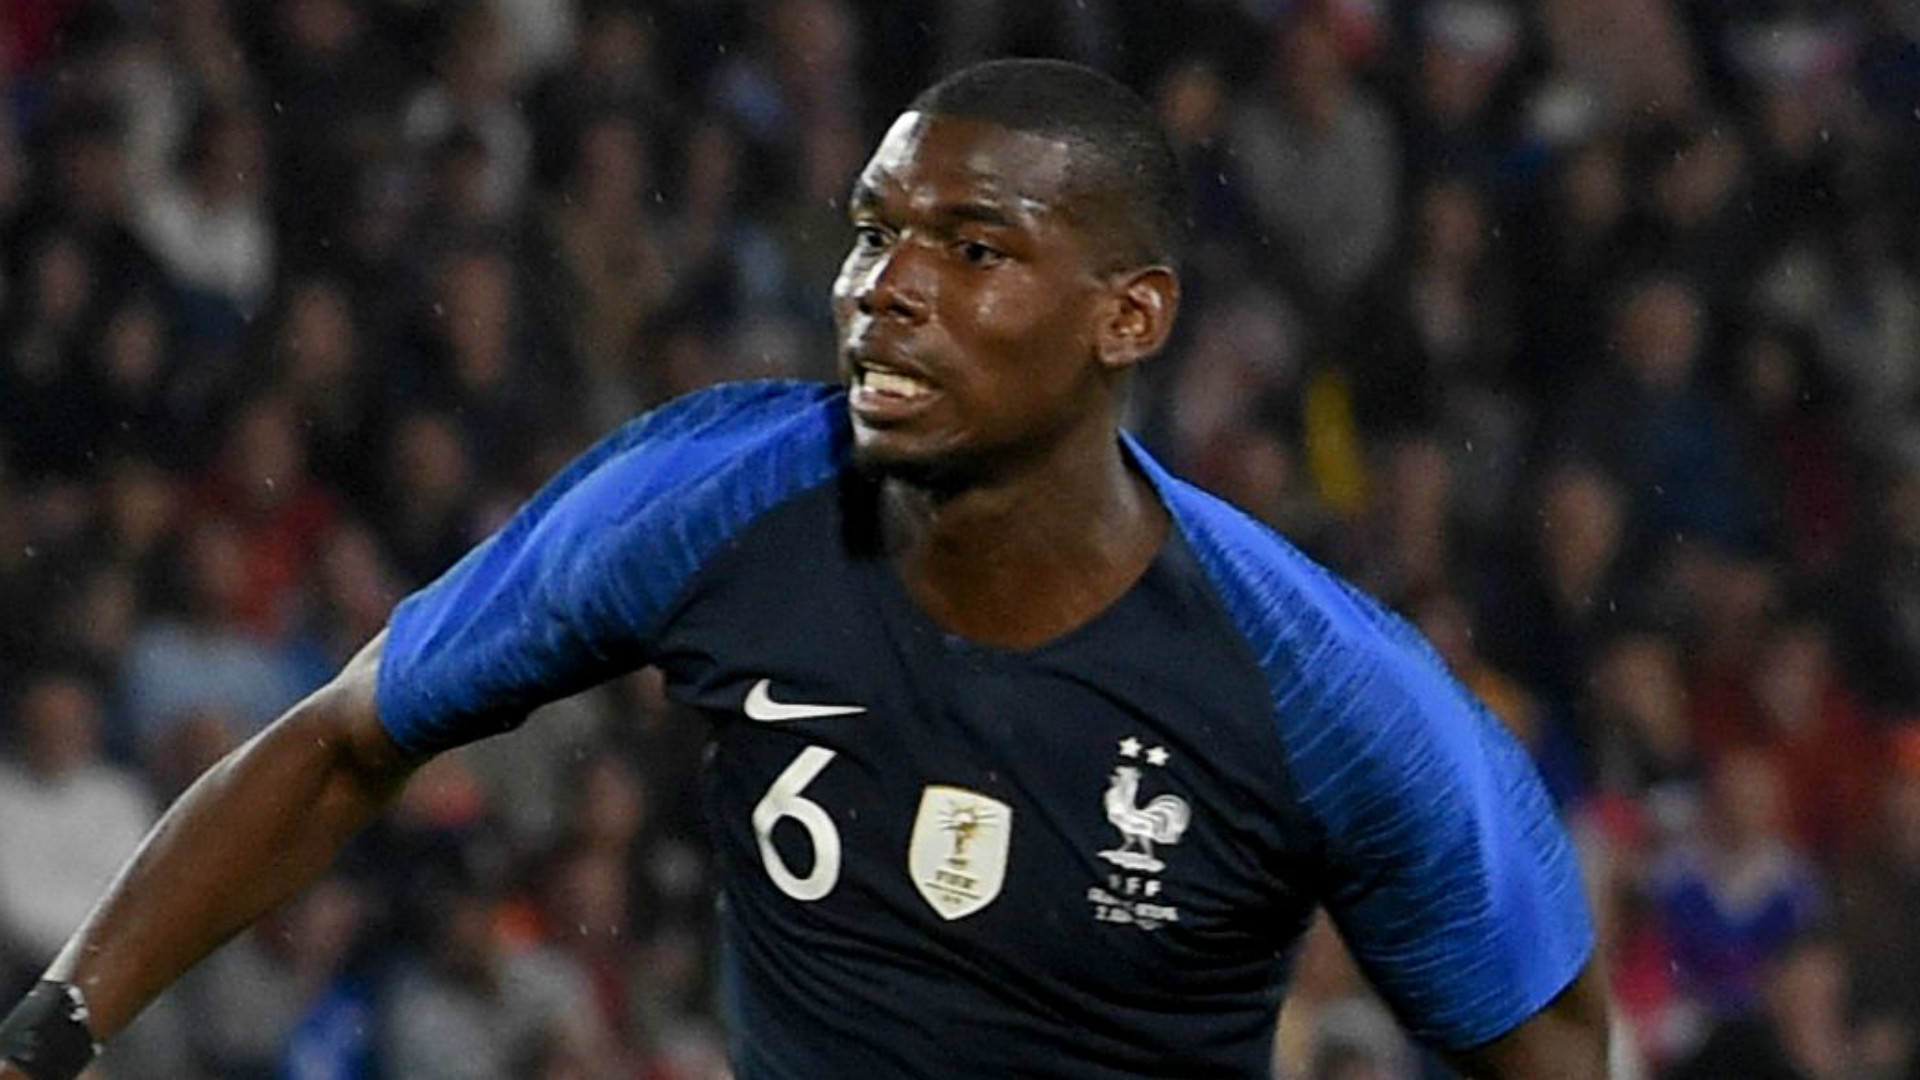 Pogba returns to France squad after missing previous UEFA Nations League fixtures due to coronavirus